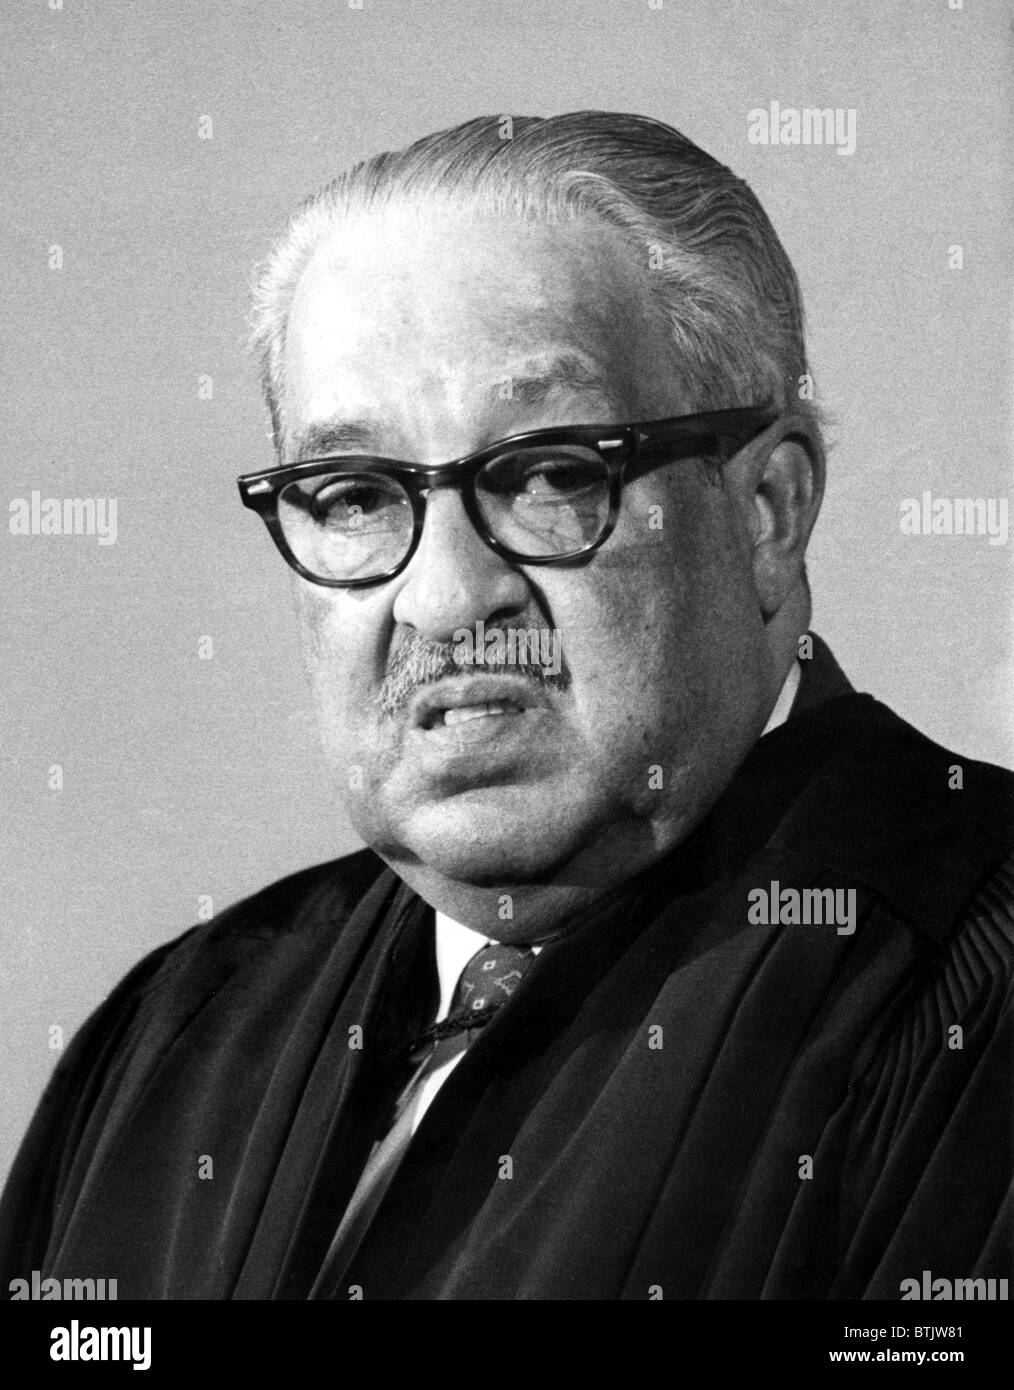 Thurgood Marshall (1908-1993) Associate Justice of the United States Supreme Court, photo:5/5/76 - Stock Image